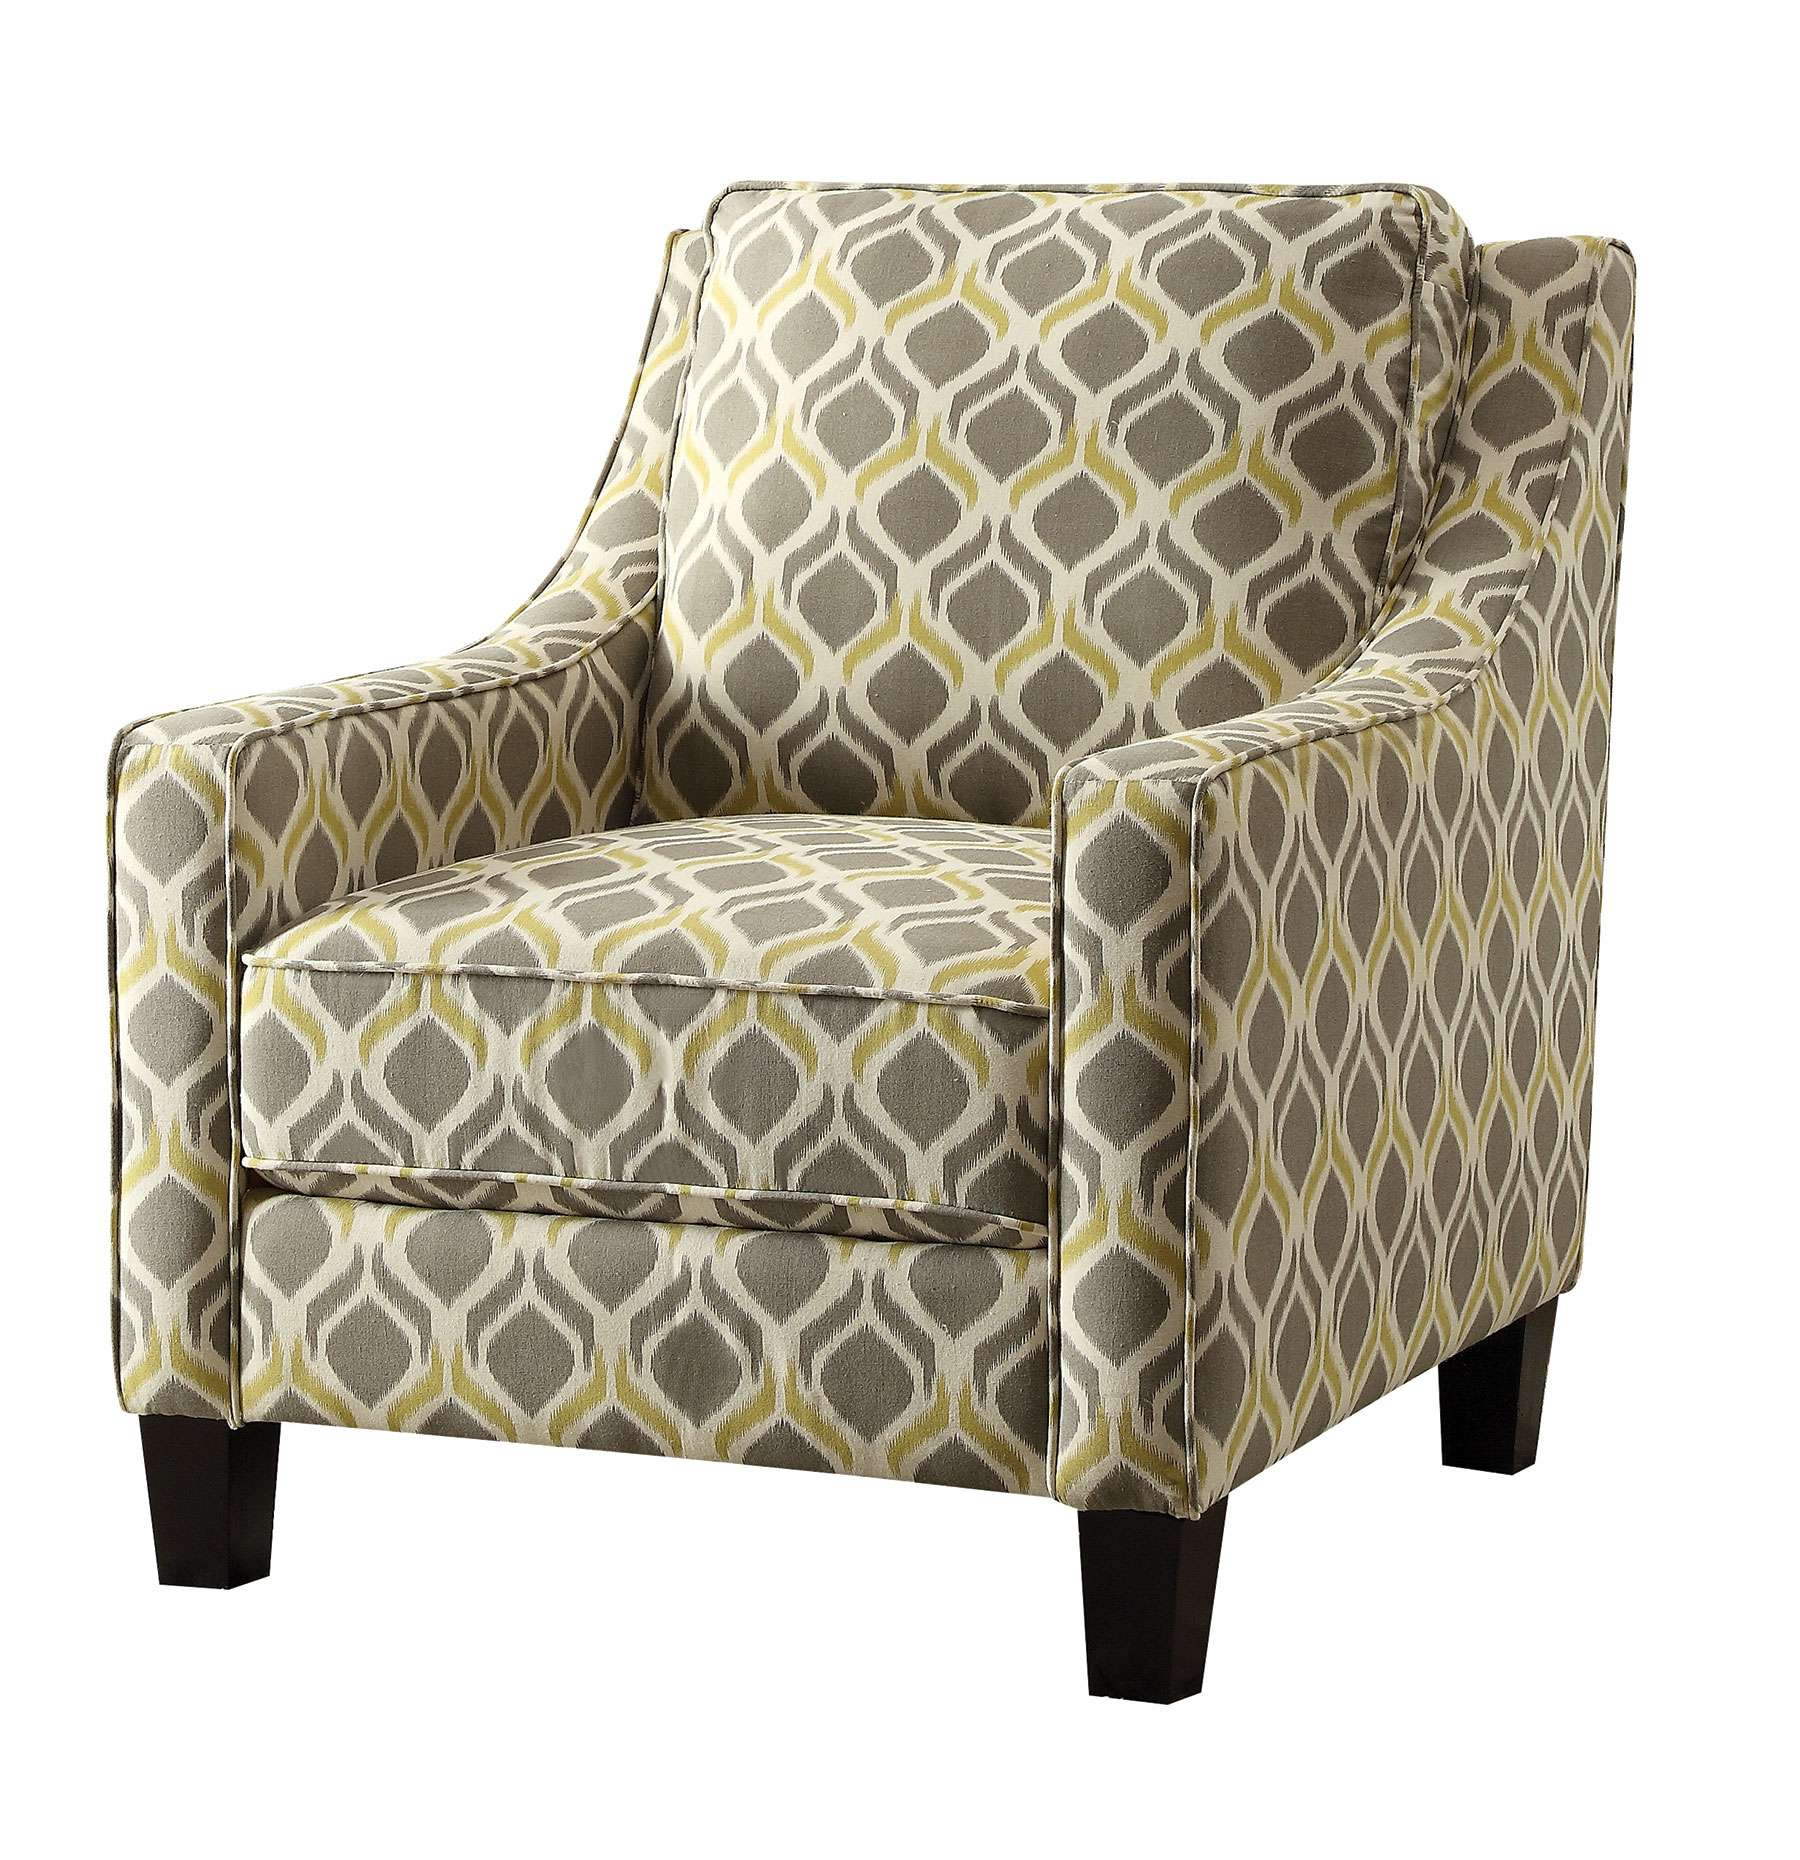 Gray and Yellow Accent Chair